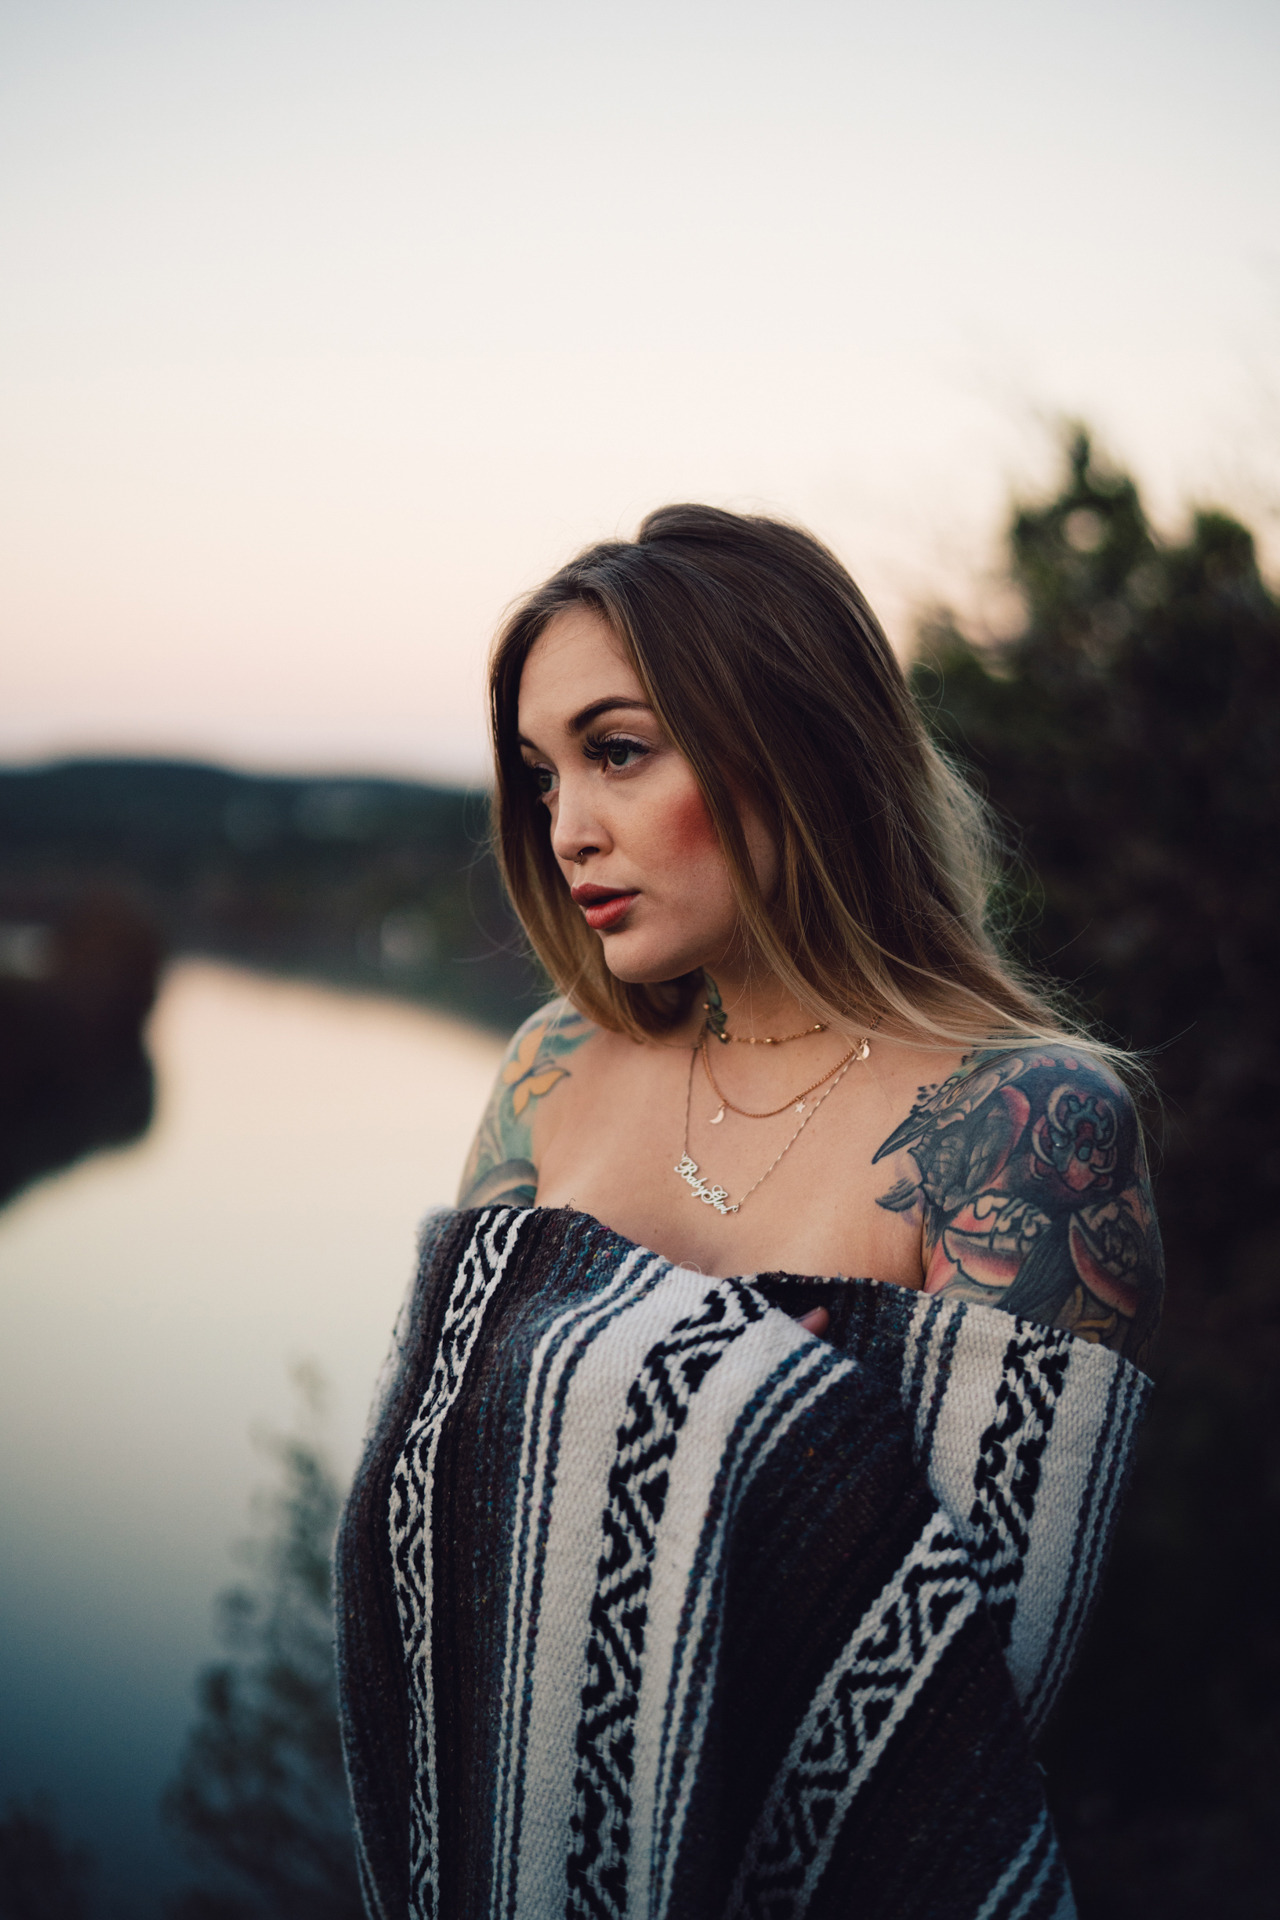 Torrie by Dalton Campbell[[MORE]]Another fantastic outdoors series captured by the great photographer Dalton Campbell and starred by gorgeous model Torrie Blake (instagram.com/torrieblake),...